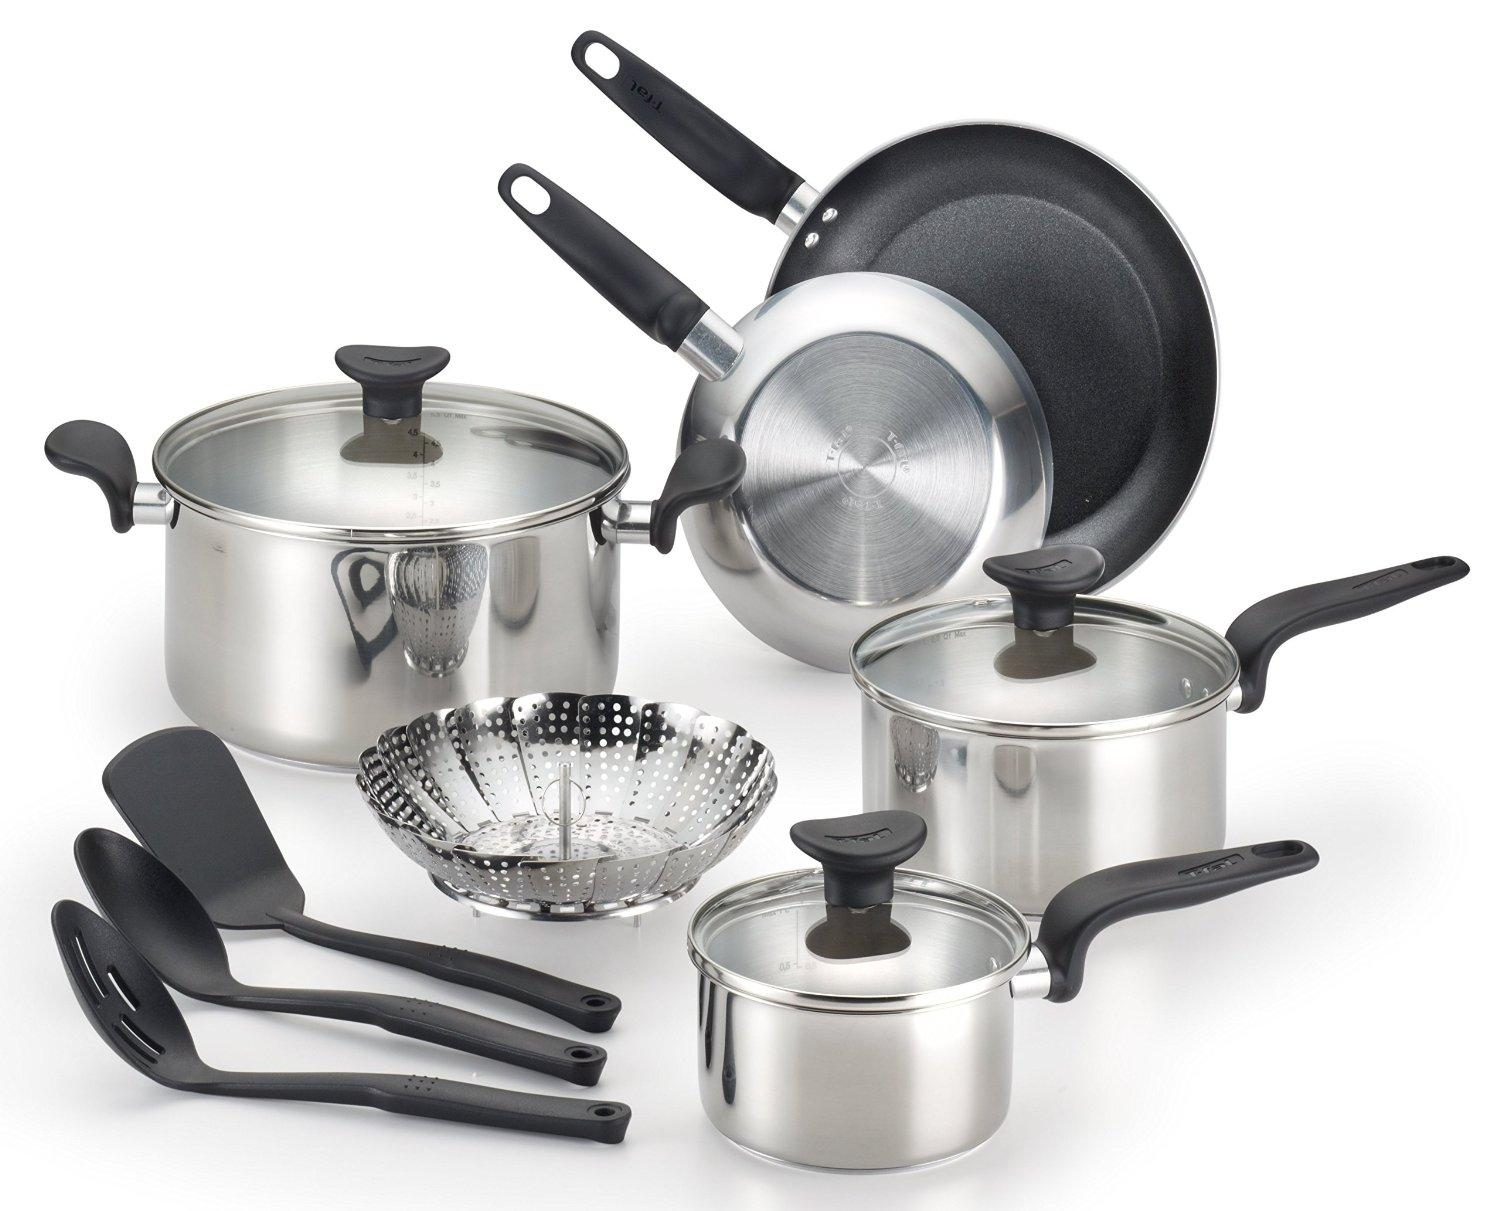 $43.06 T-fal C917SC Enjoy Stainless Steel Dishwasher Safe Cookware Set, 12-Piece, Silver